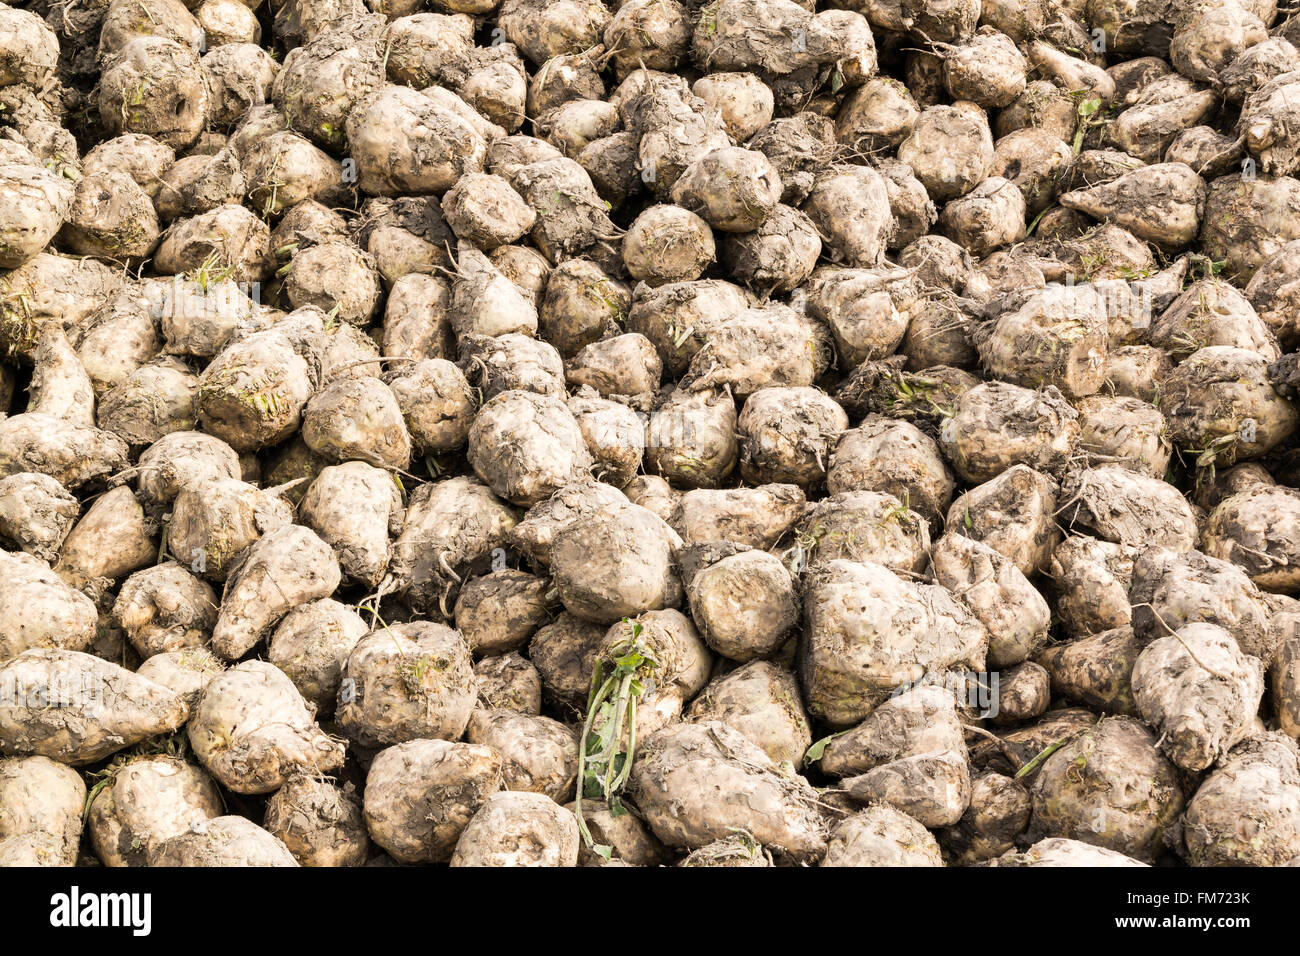 Pile of stacked sugar beet roots after harvest in Friesland, the Netherlands - Stock Image